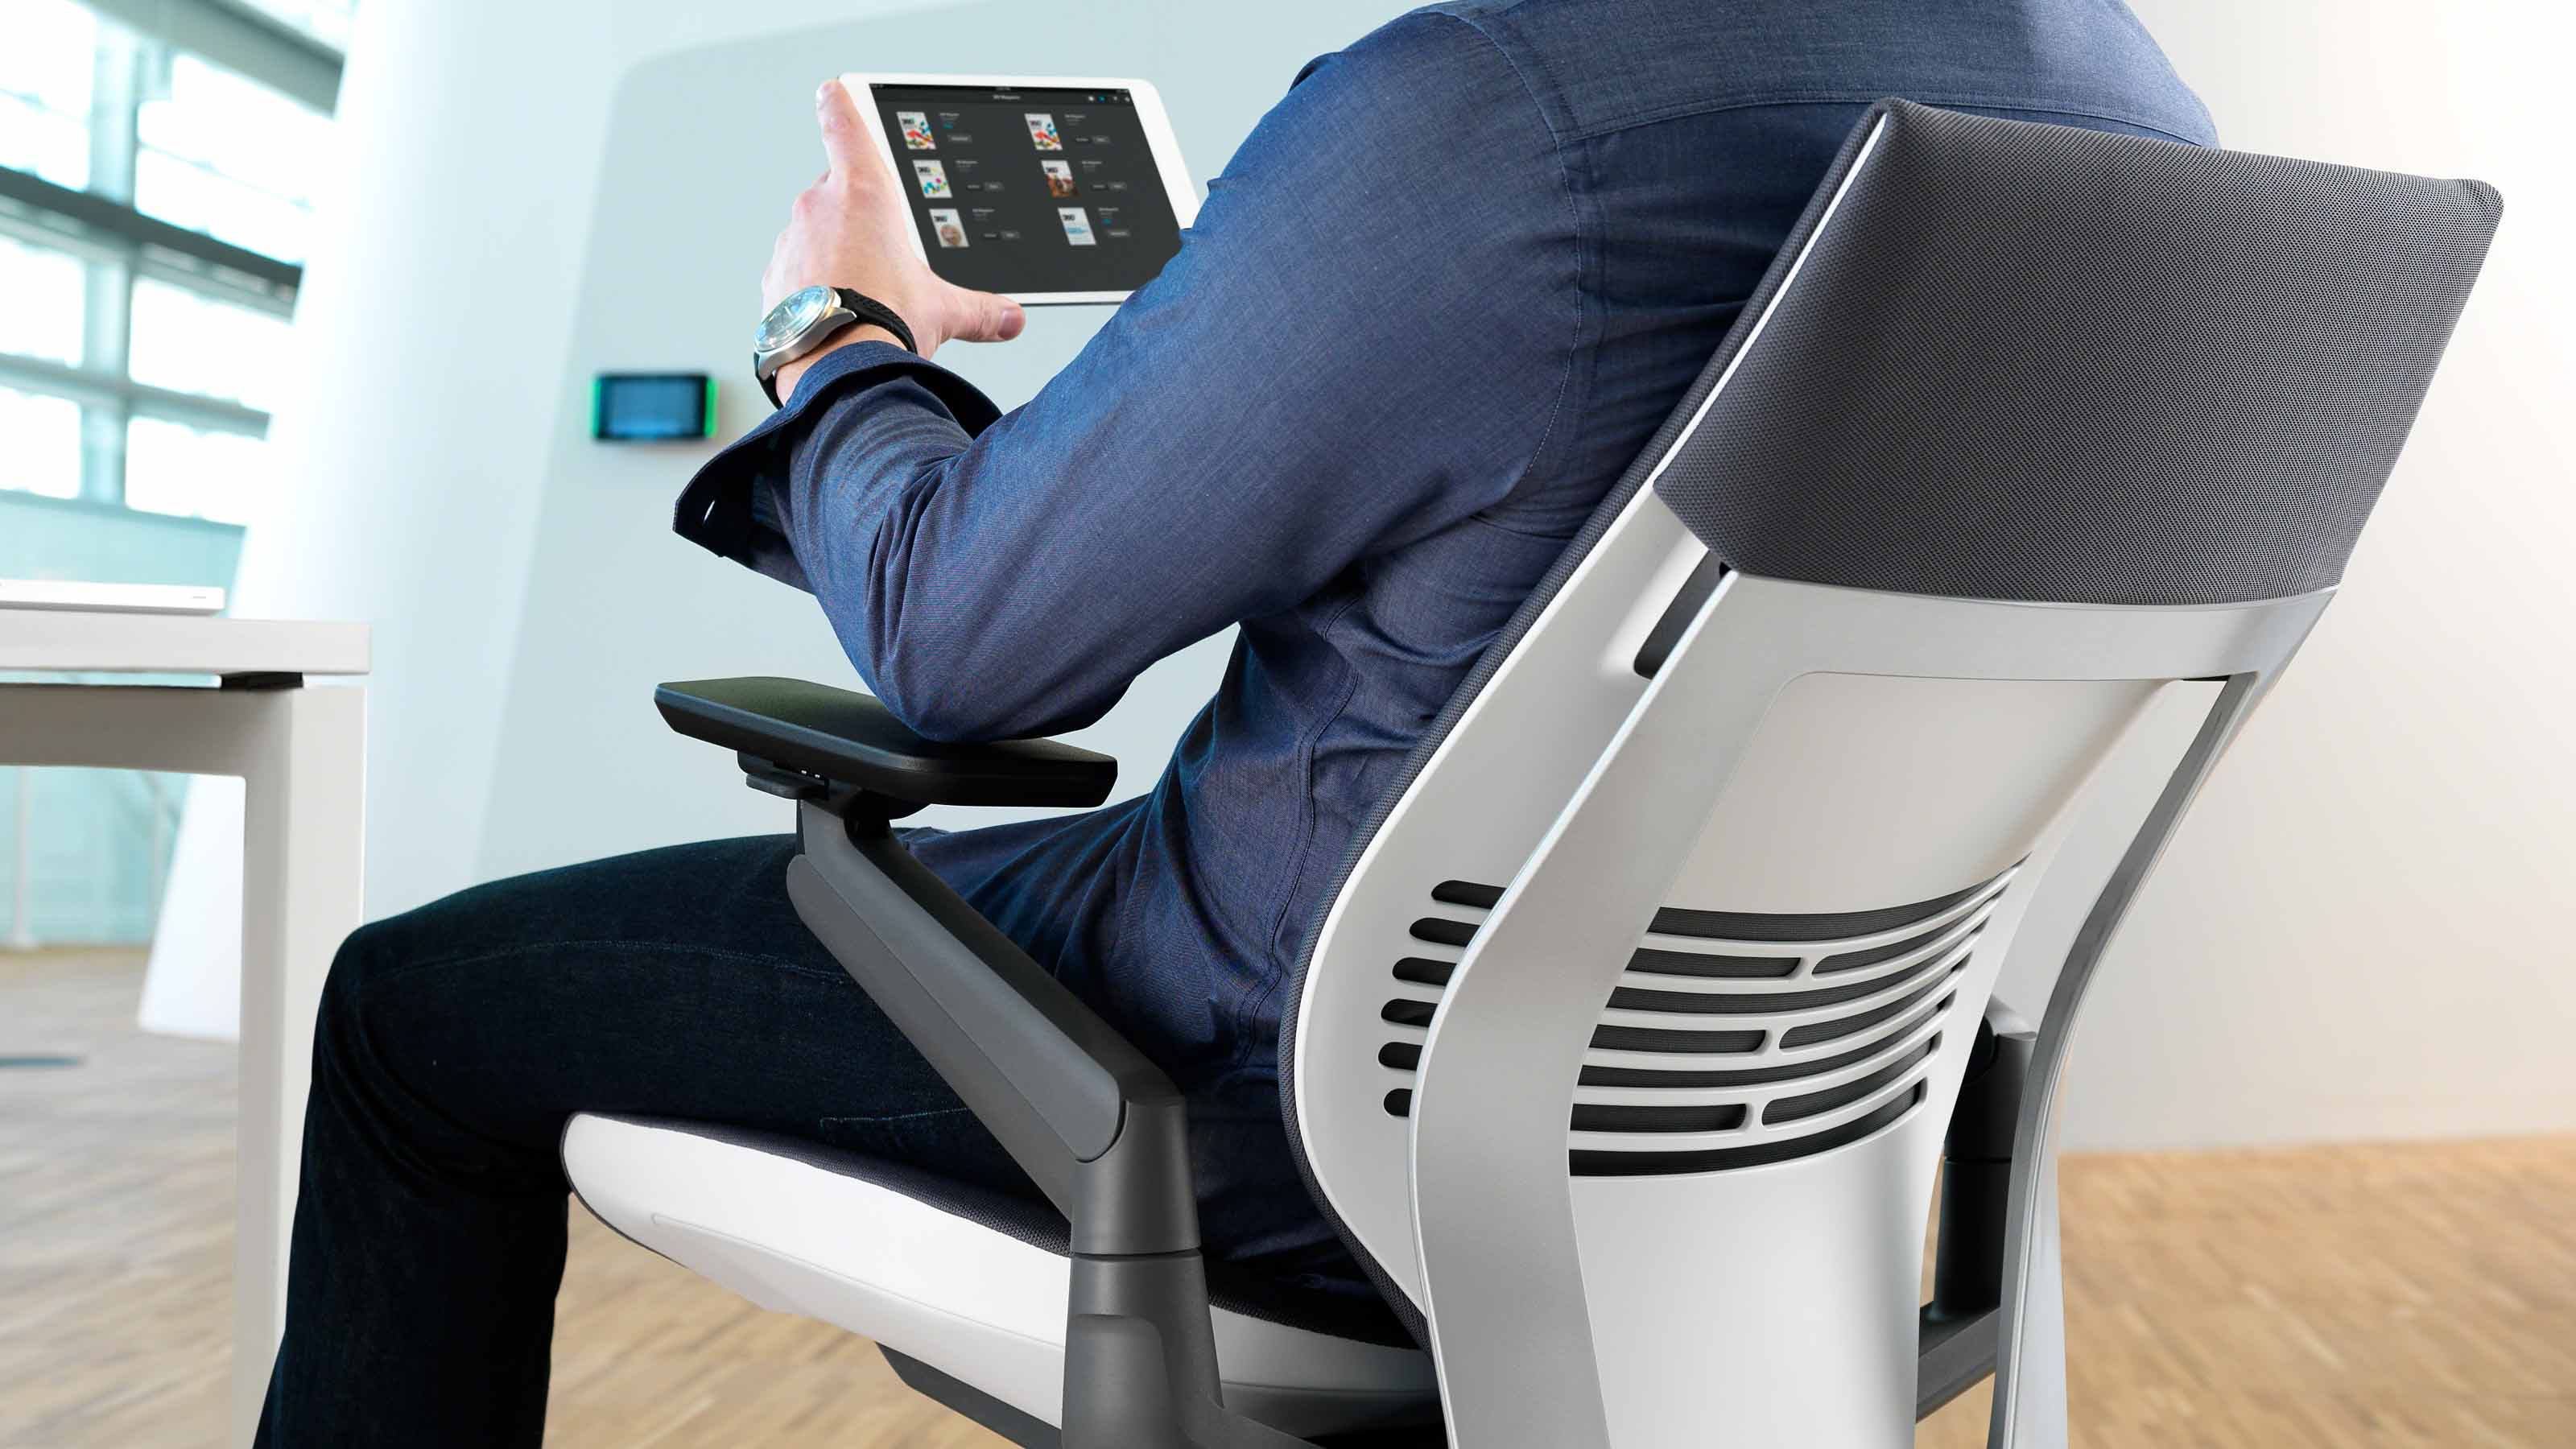 cool ergonomic office desk chair. Cool Ergonomic Office Desk Chair C